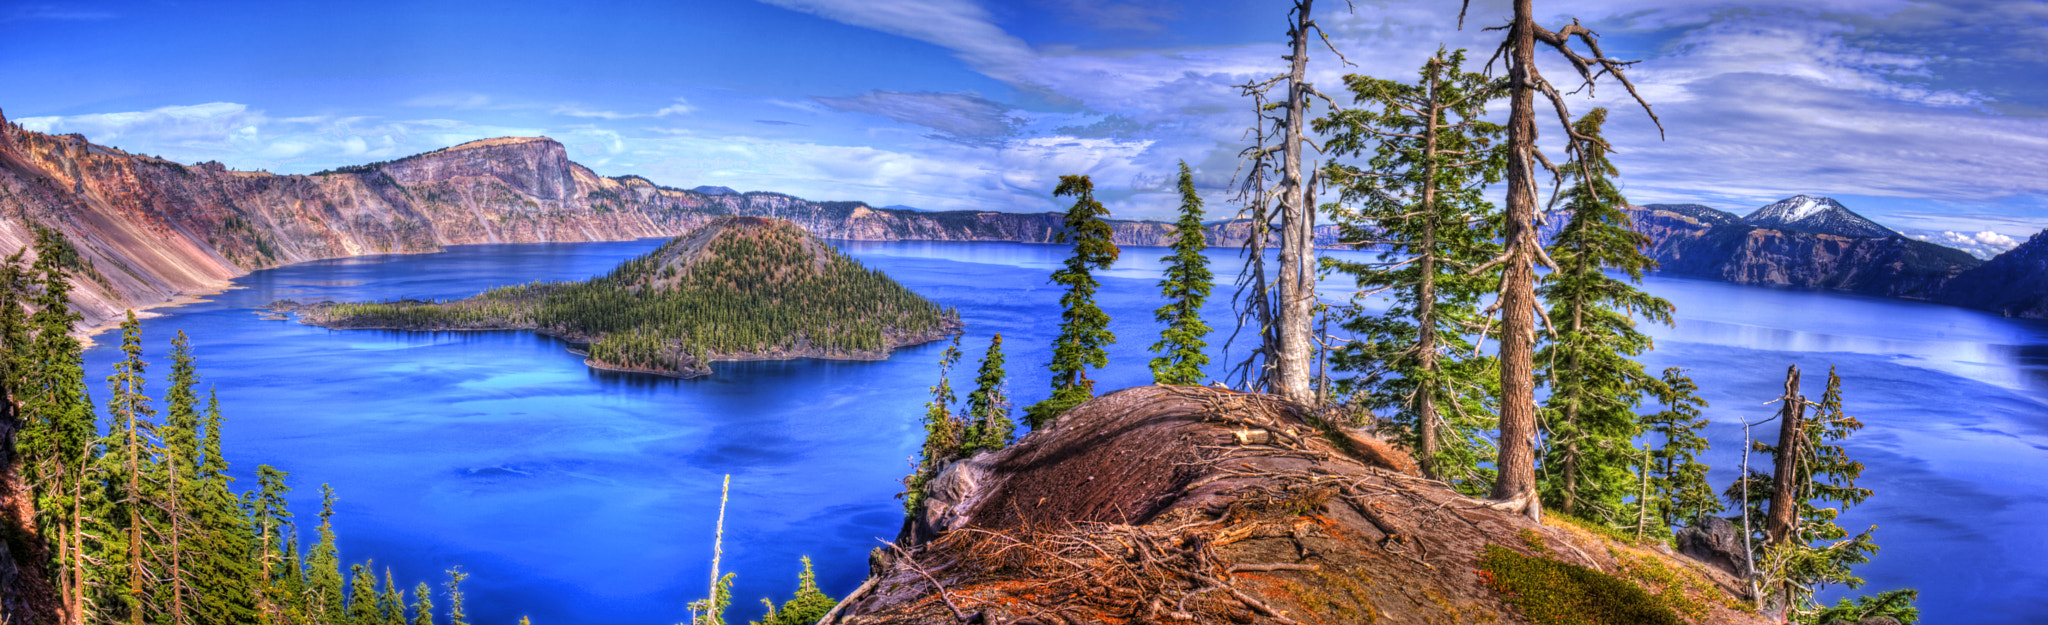 Photograph Crater Lake by Steve Lents on 500px